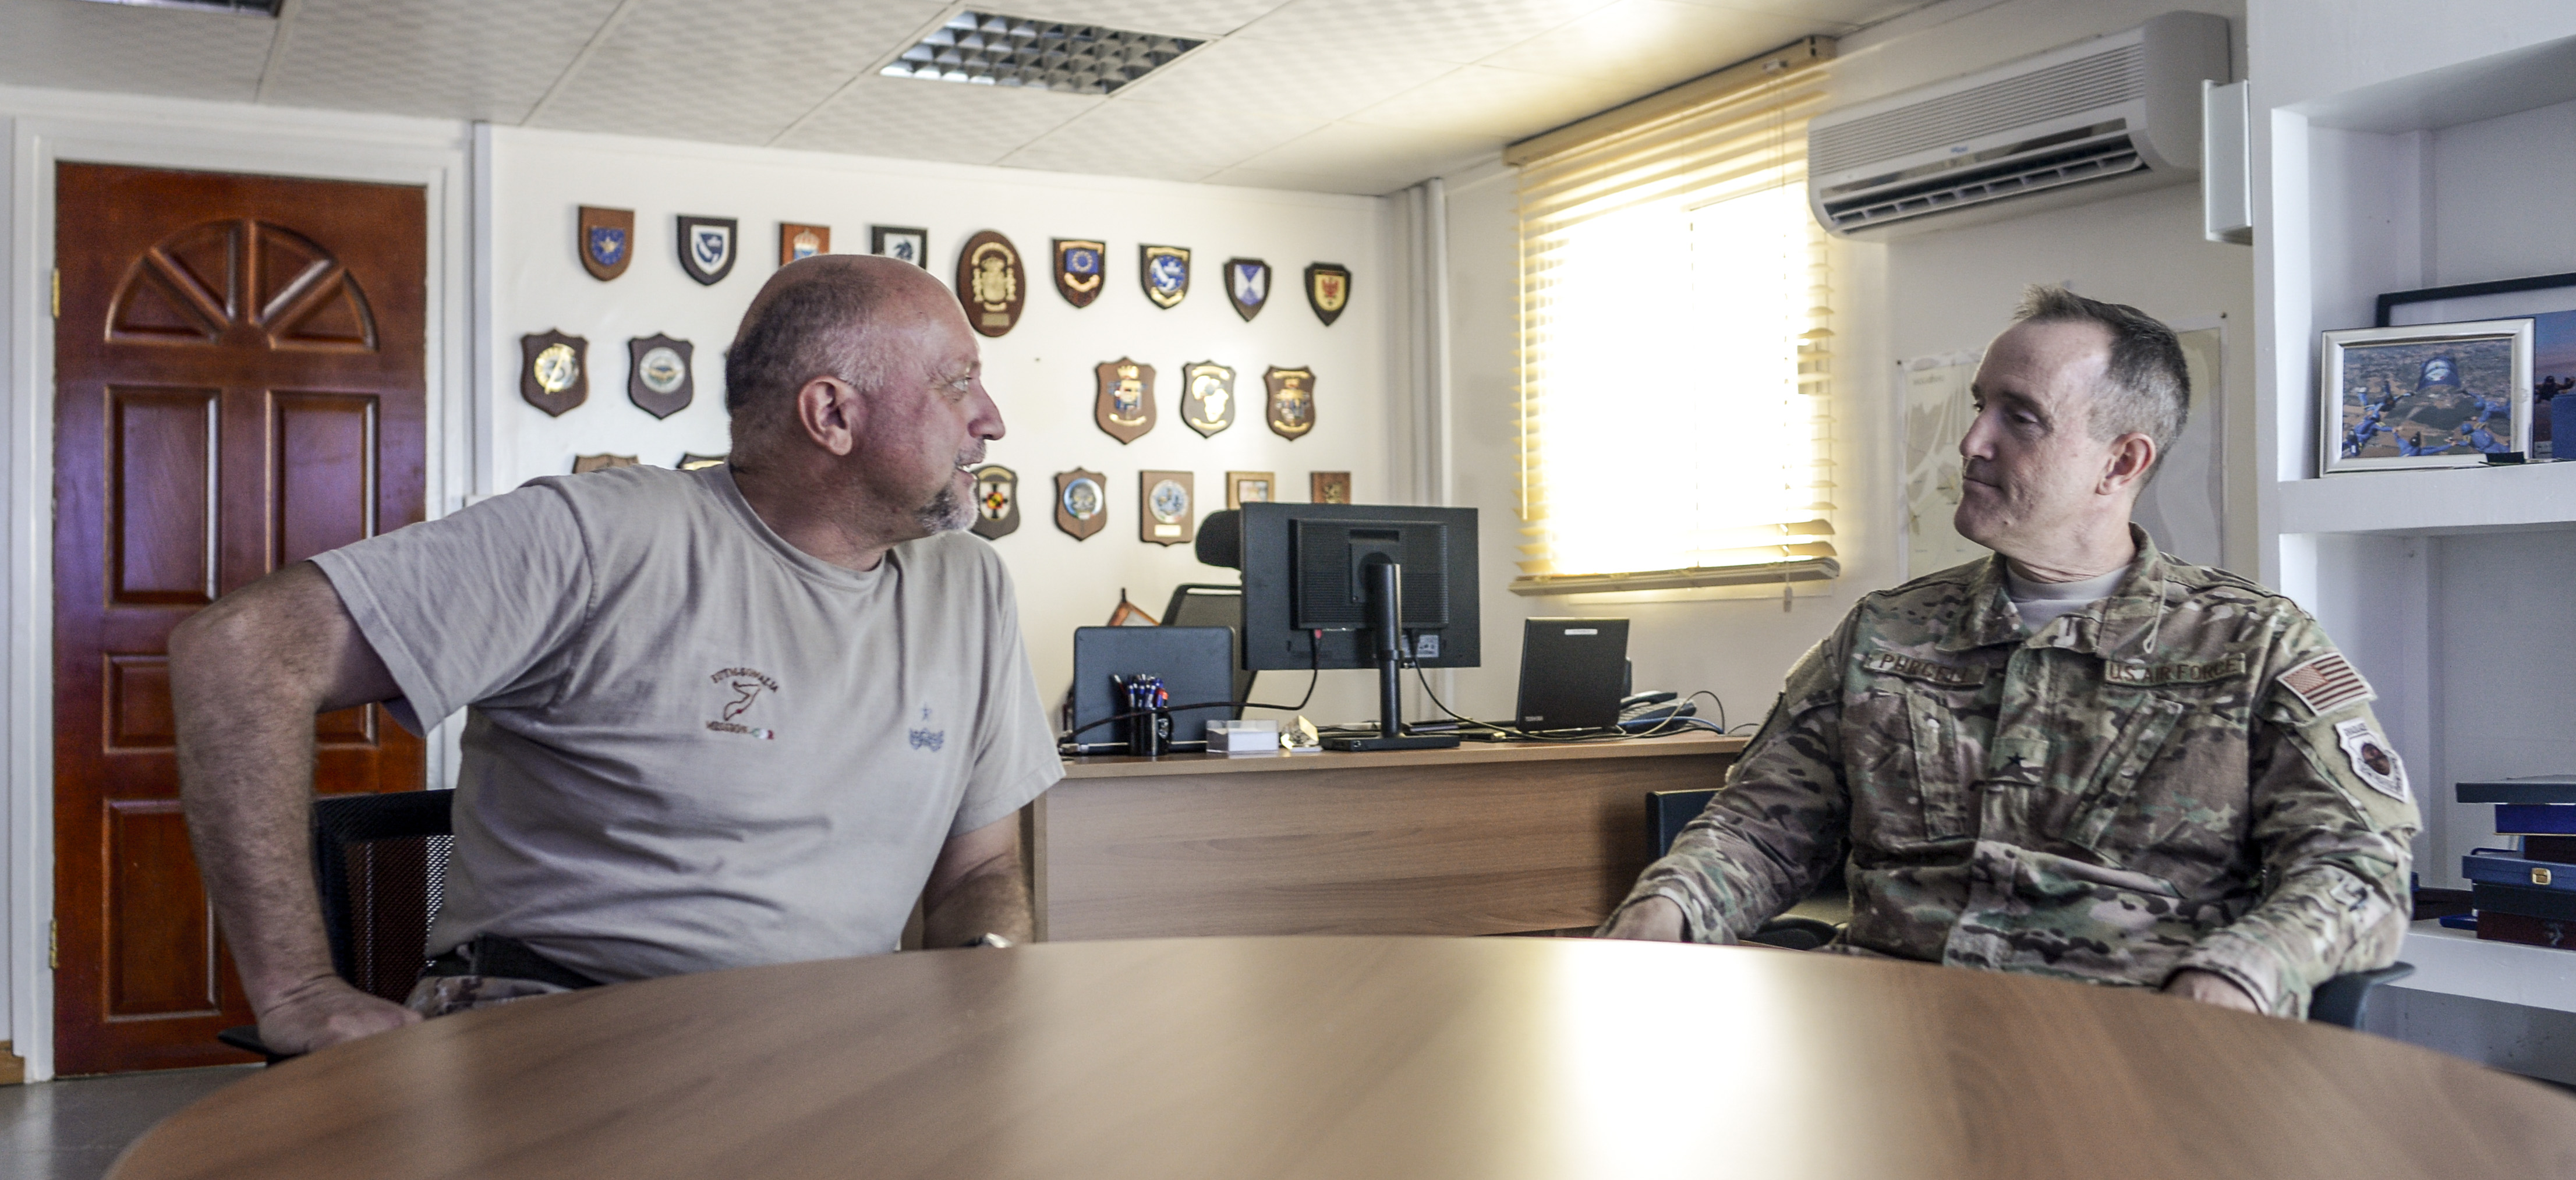 Italian army Brig. Gen. Maurizio Morena, European Union Training Mission in Somalia commander, discusses the current status of Mogadishu with U.S. Air Force Brig. Gen. Phil Purcell, Combined Joint Task Force-Horn of Africa deputy commander, in Mogadishu, Somalia March 15, 2017. Purcell travelled to Mogadishu to engage with various military leaders and foster relationships with key stakeholders in the region. (U.S. Air National Guard photo by Christian M. Jadot)